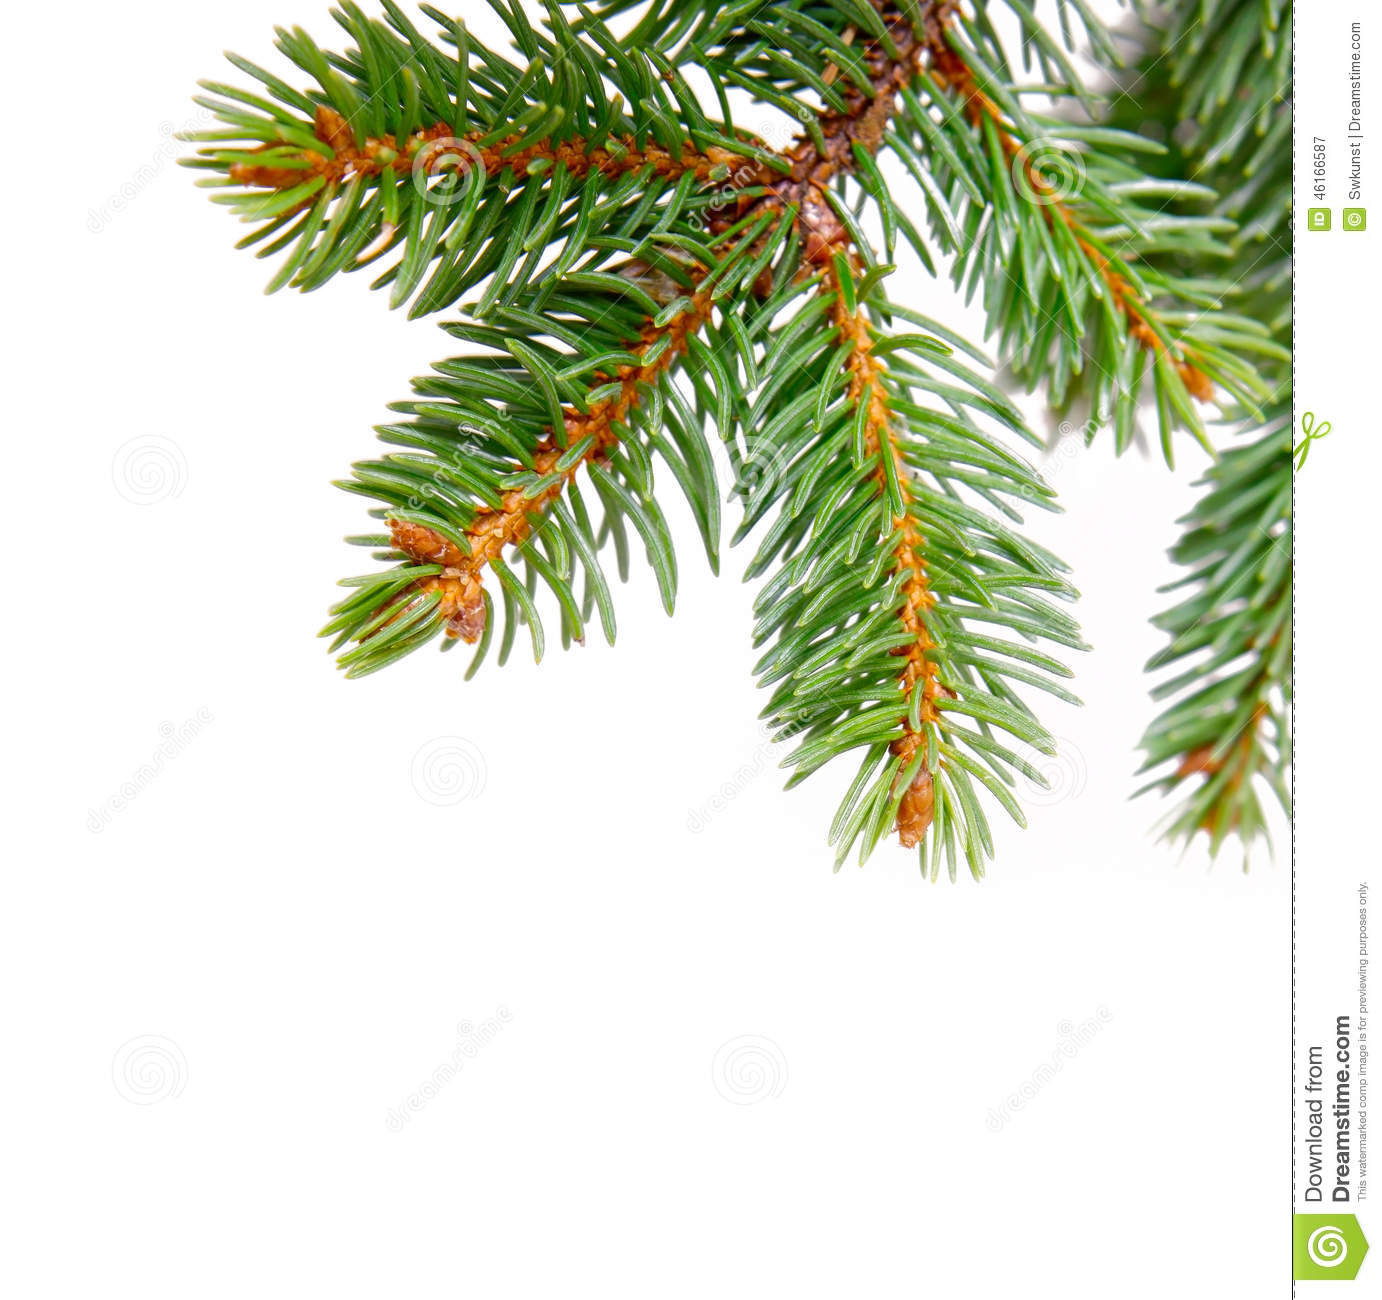 Christmas Decorations With Tree Branches: Christmas Tree Branches And Decorations Isolated Stock